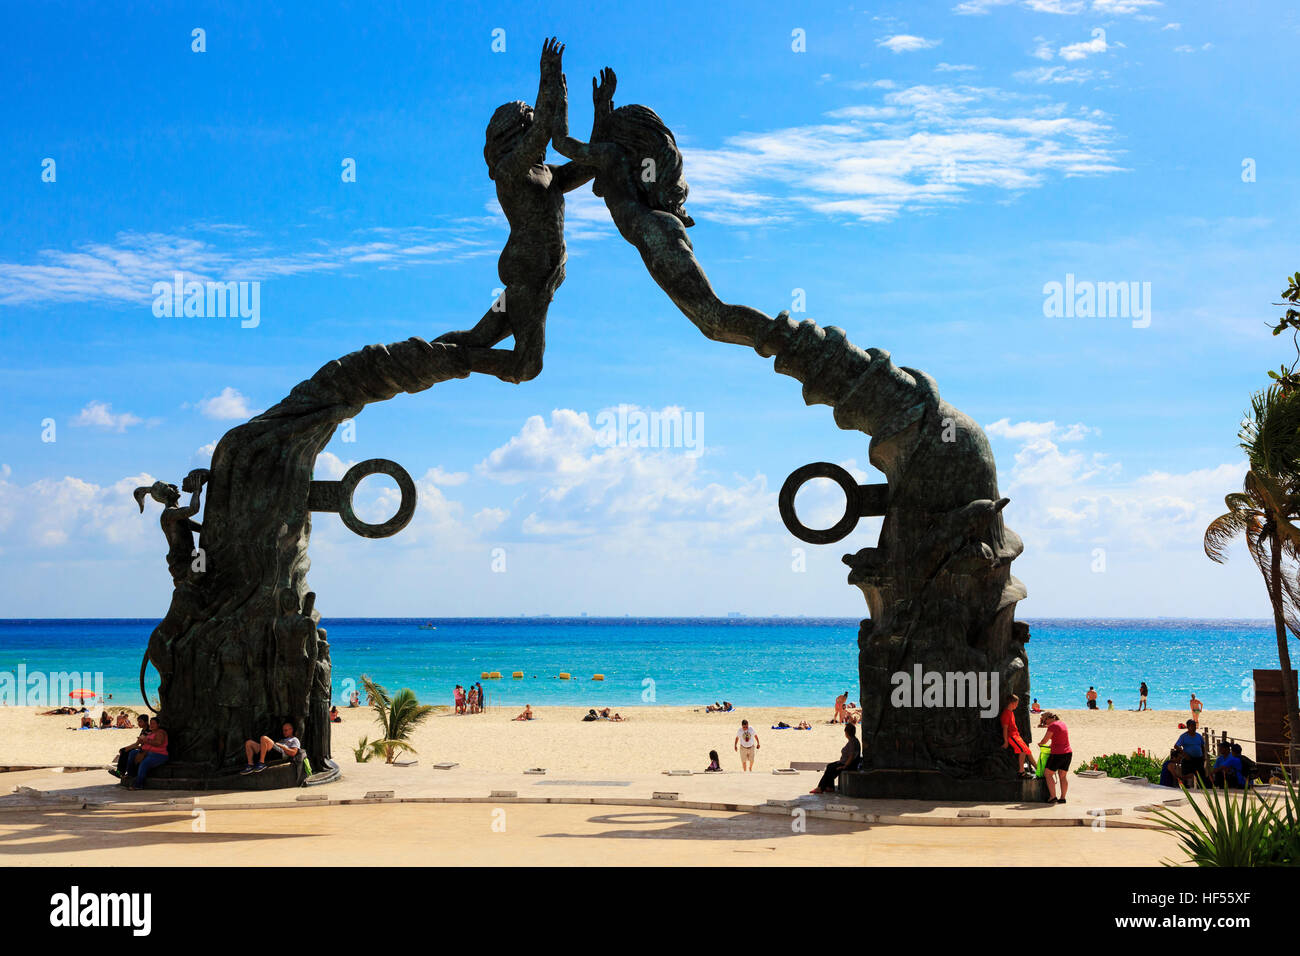 Entrance to the beach at Playa Del Carmen with symbols from the ancient Mayan culture, Riviera Maya, Mexico - Stock Image